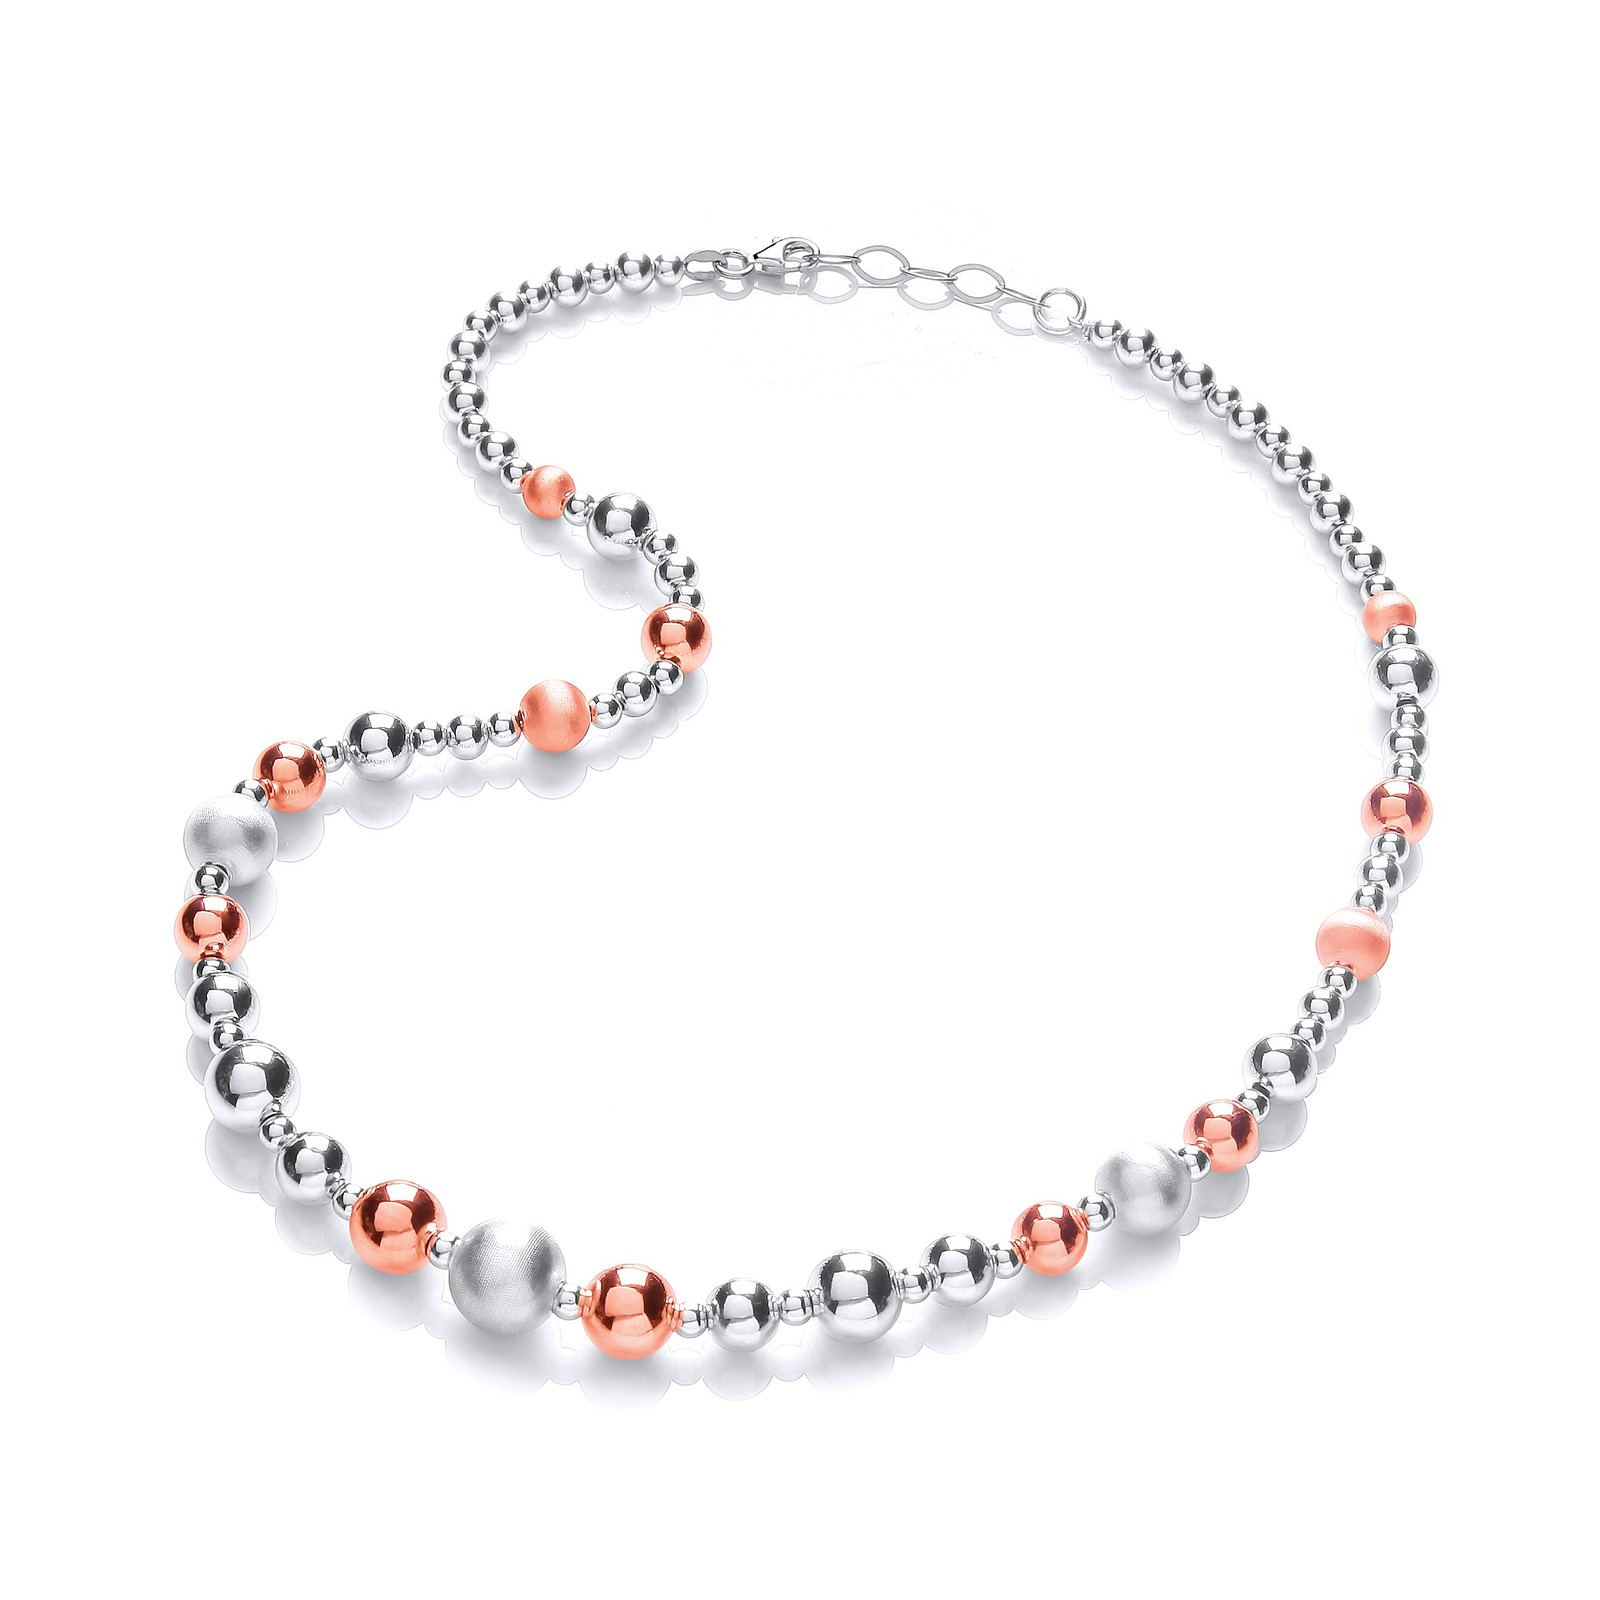 Silver & Rose Plated Graduated Beads Necklace